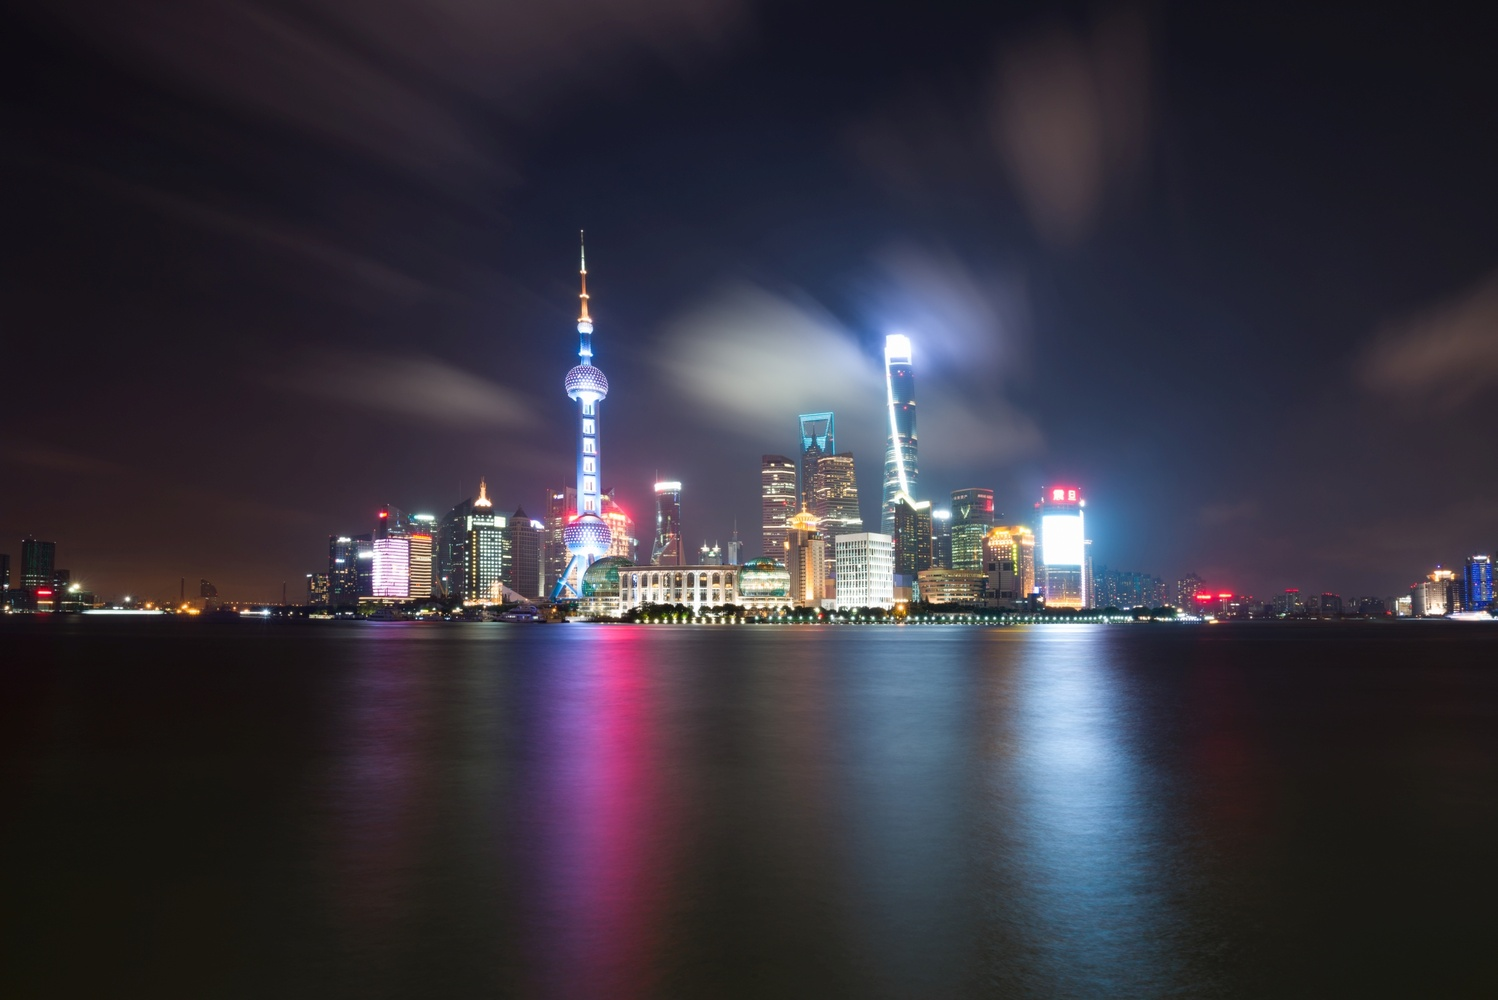 Pudong skyline by night, seen from the Bund 上海 by Léonard Rodriguez